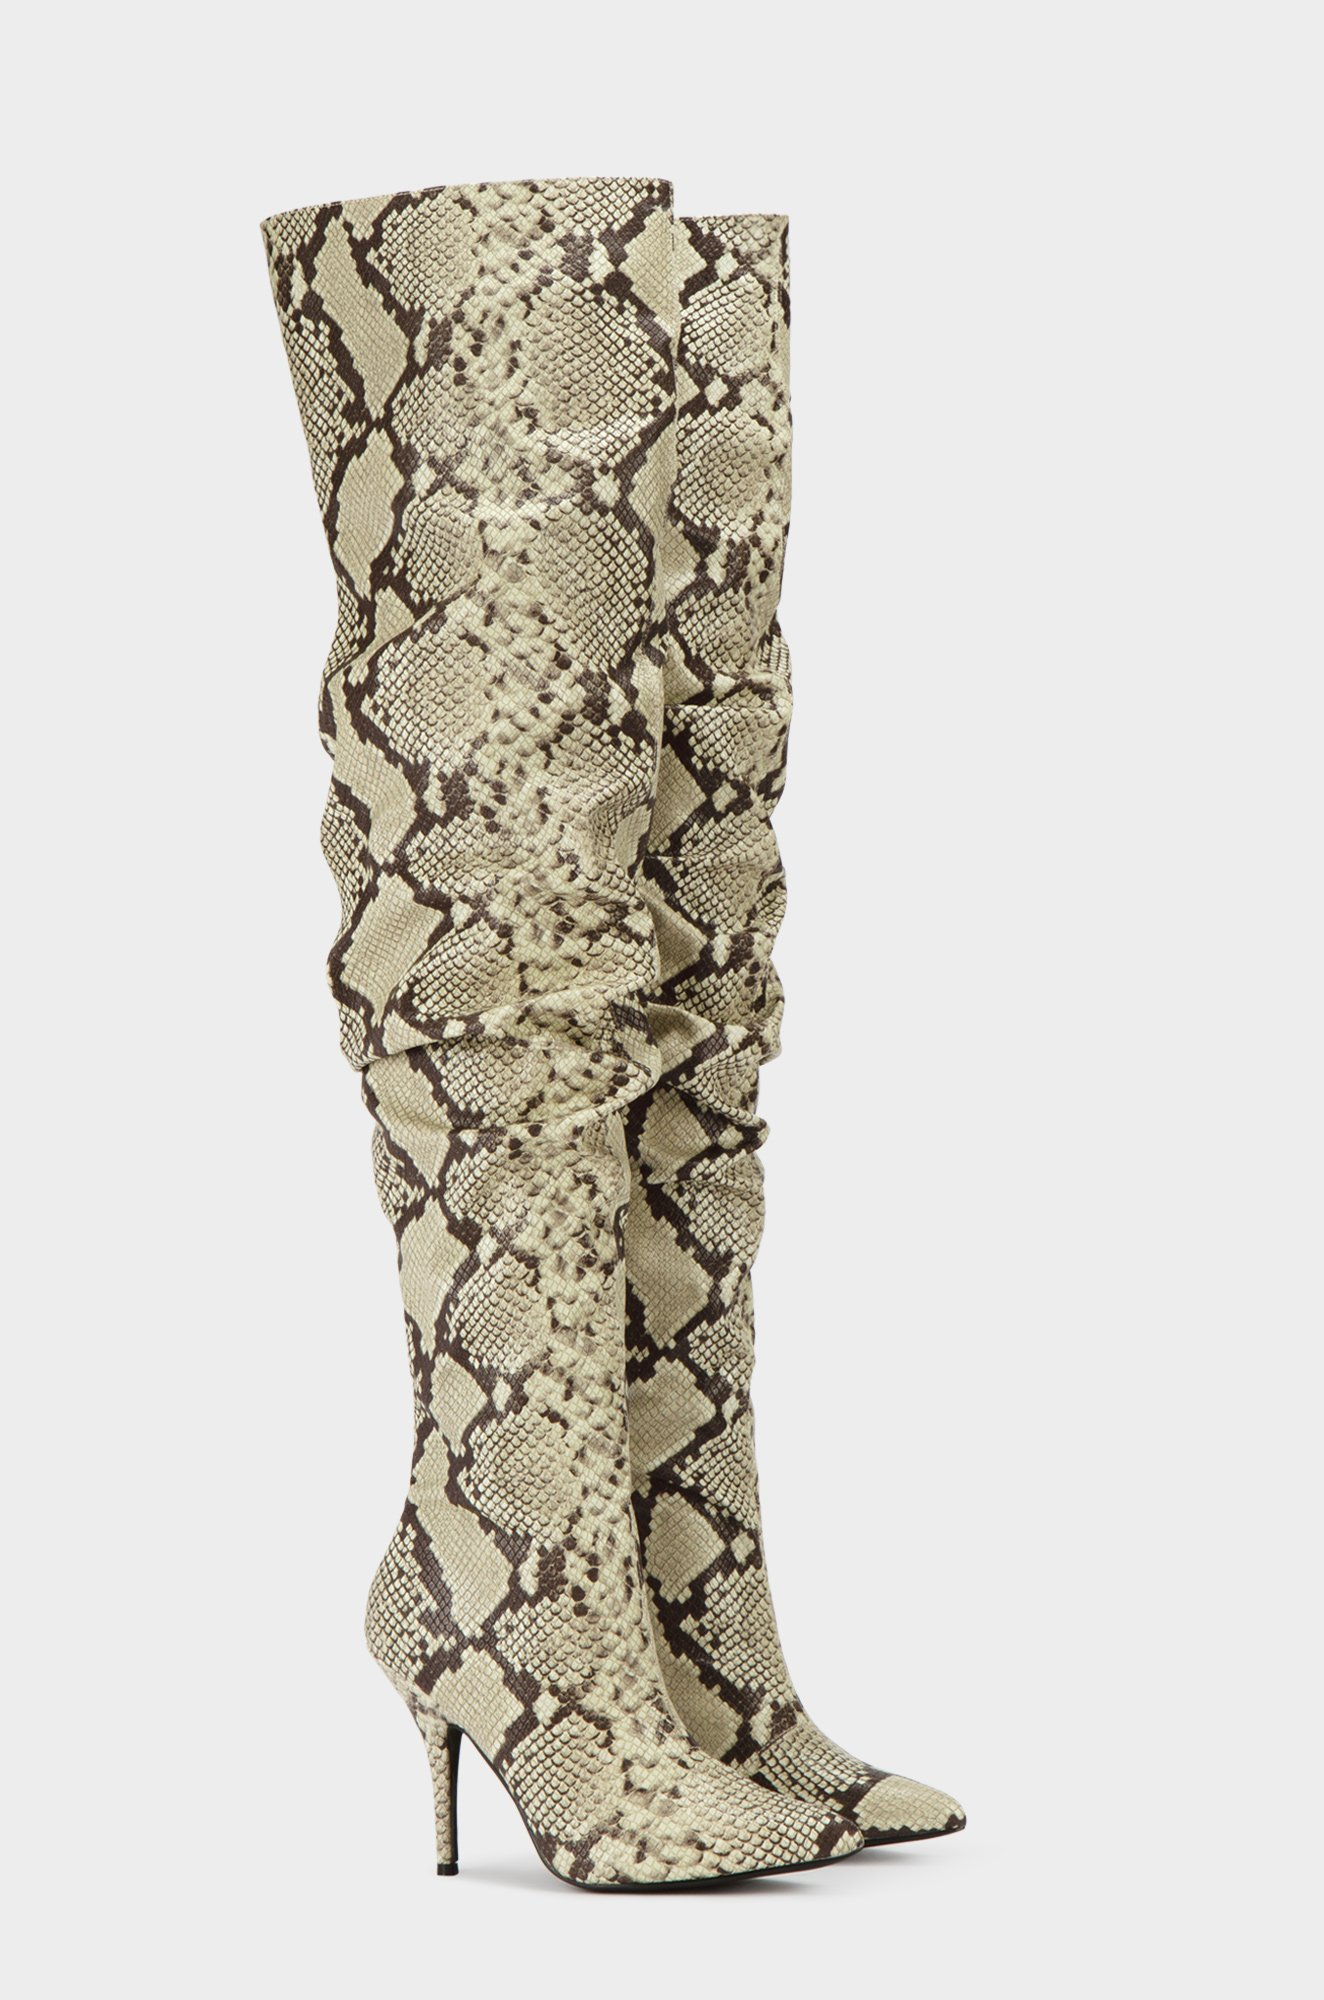 Cape-Robbin-Bown-Snake-Thigh-High-Slouch-Pointed-Toe-Over-The-Knee-Stiletto-Boot thumbnail 60